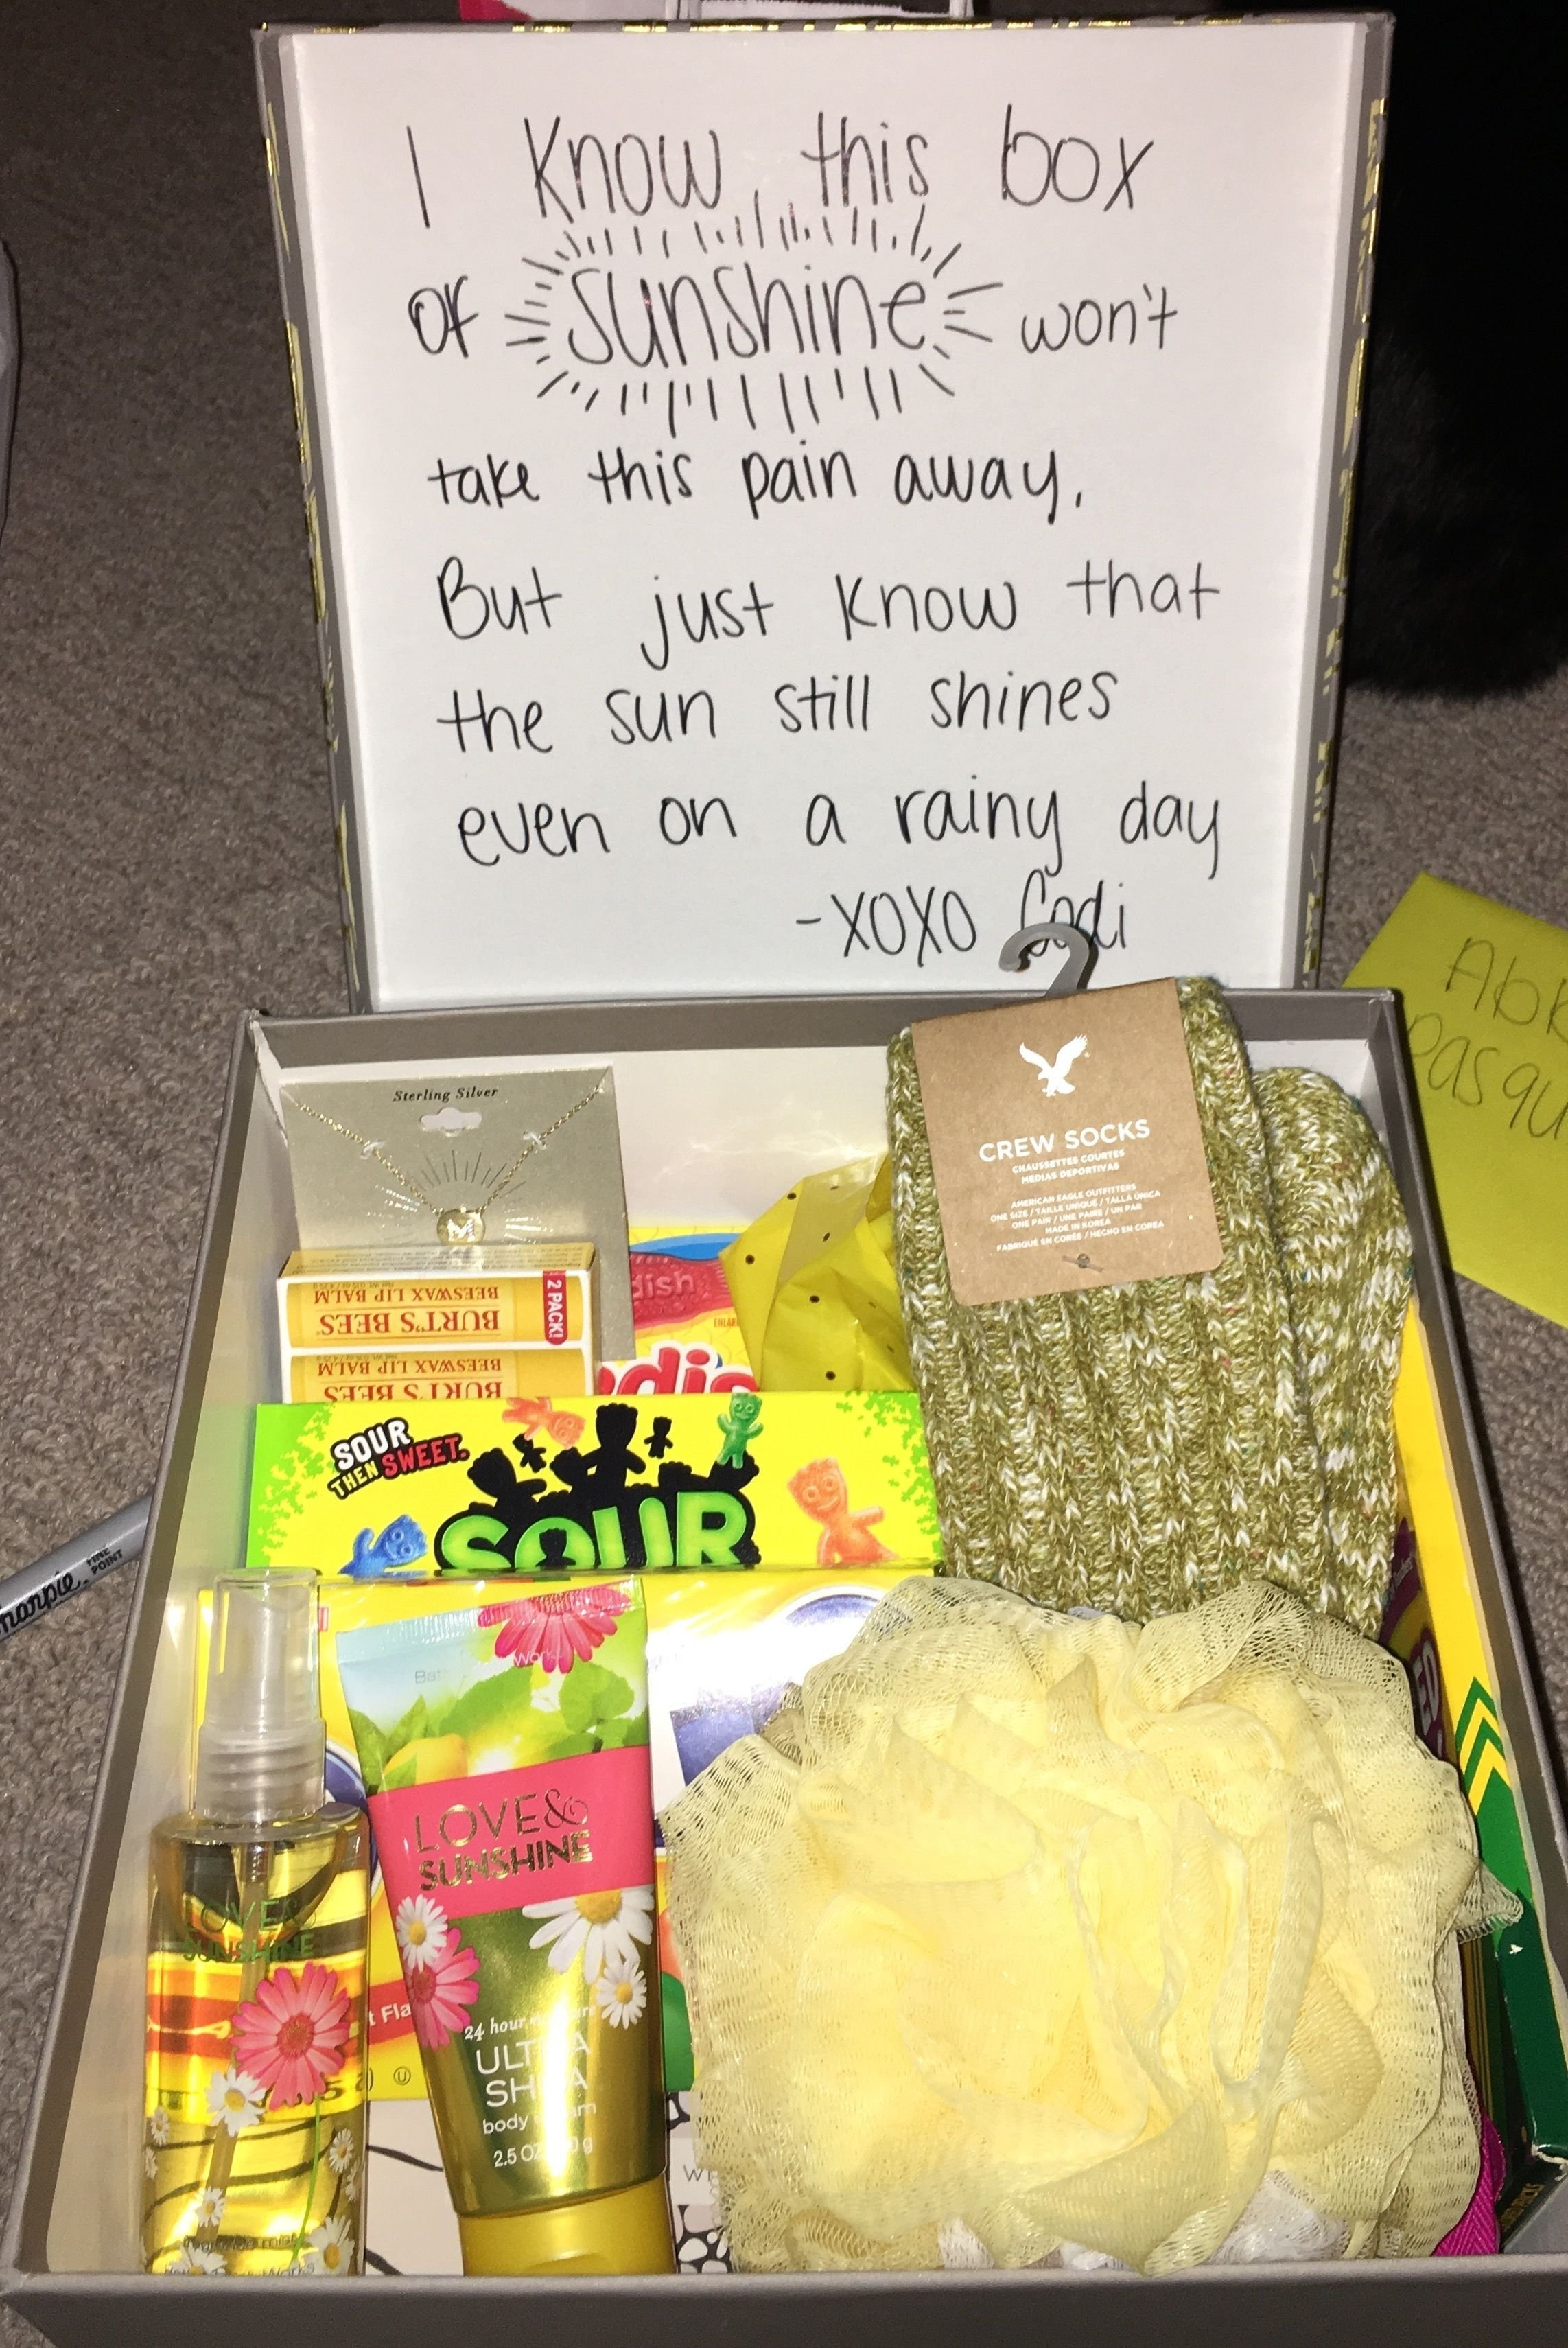 10 Nice Best Friend Birthday Present Ideas care package for grieving friend good idea pinterest gift 27